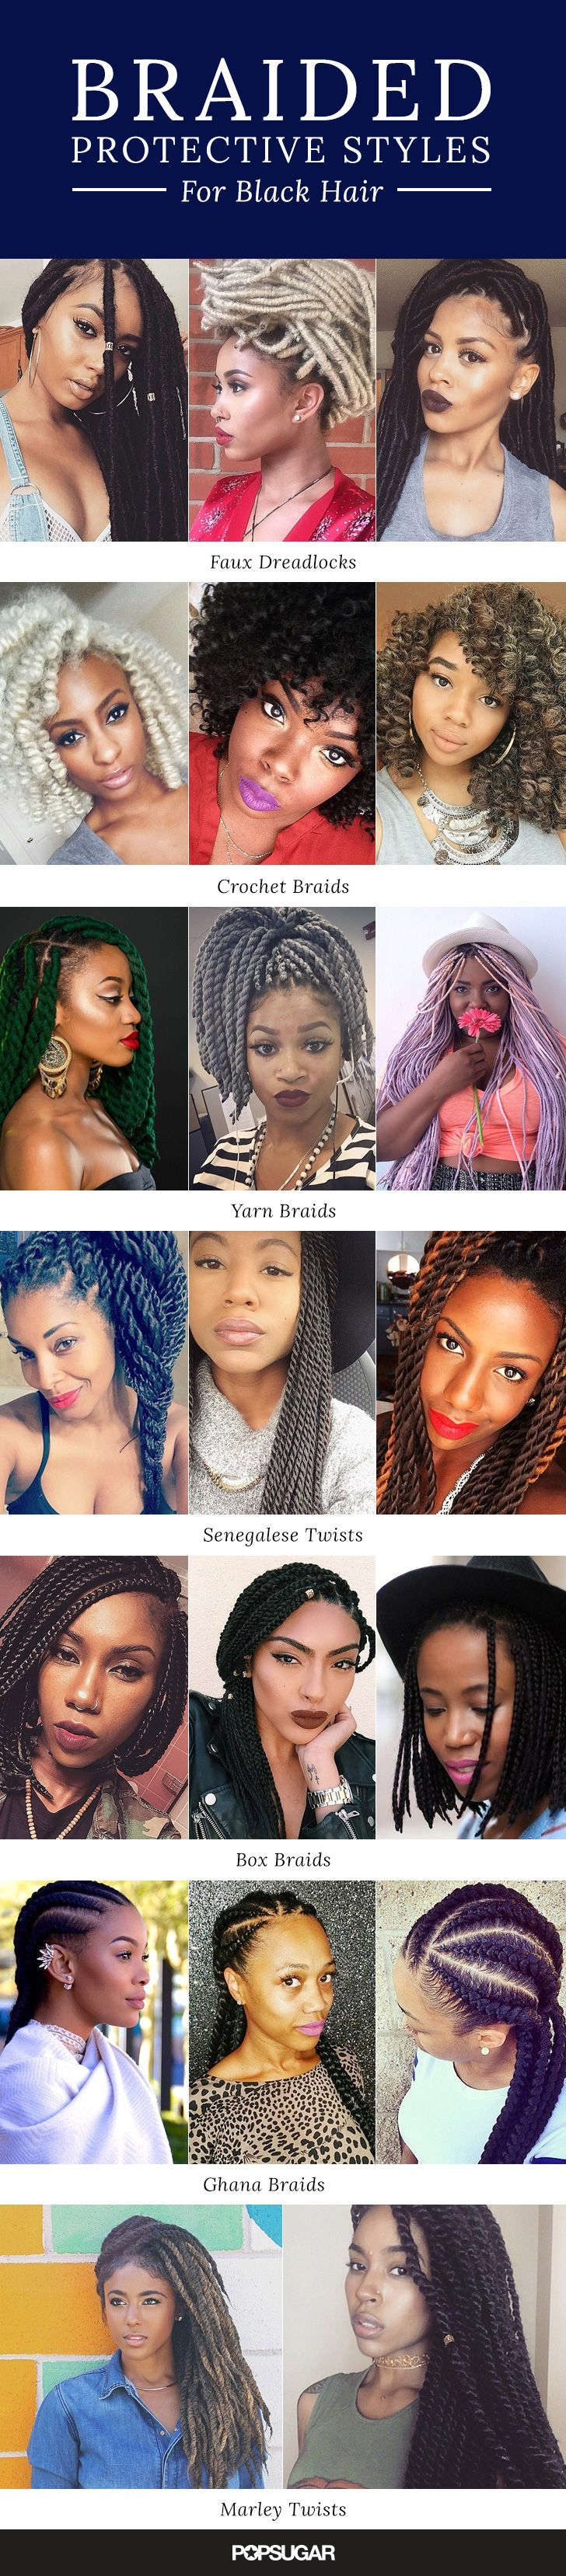 Summer braids aren't just reserved for little girls. My friends still get plaits before a big vacation or to take a break from using hot tools. ~African fashion, Ankara, kitenge, African women dresses, African prints, Braids, Nigerian wedding, Ghanaian fashion, African wedding ~DKK